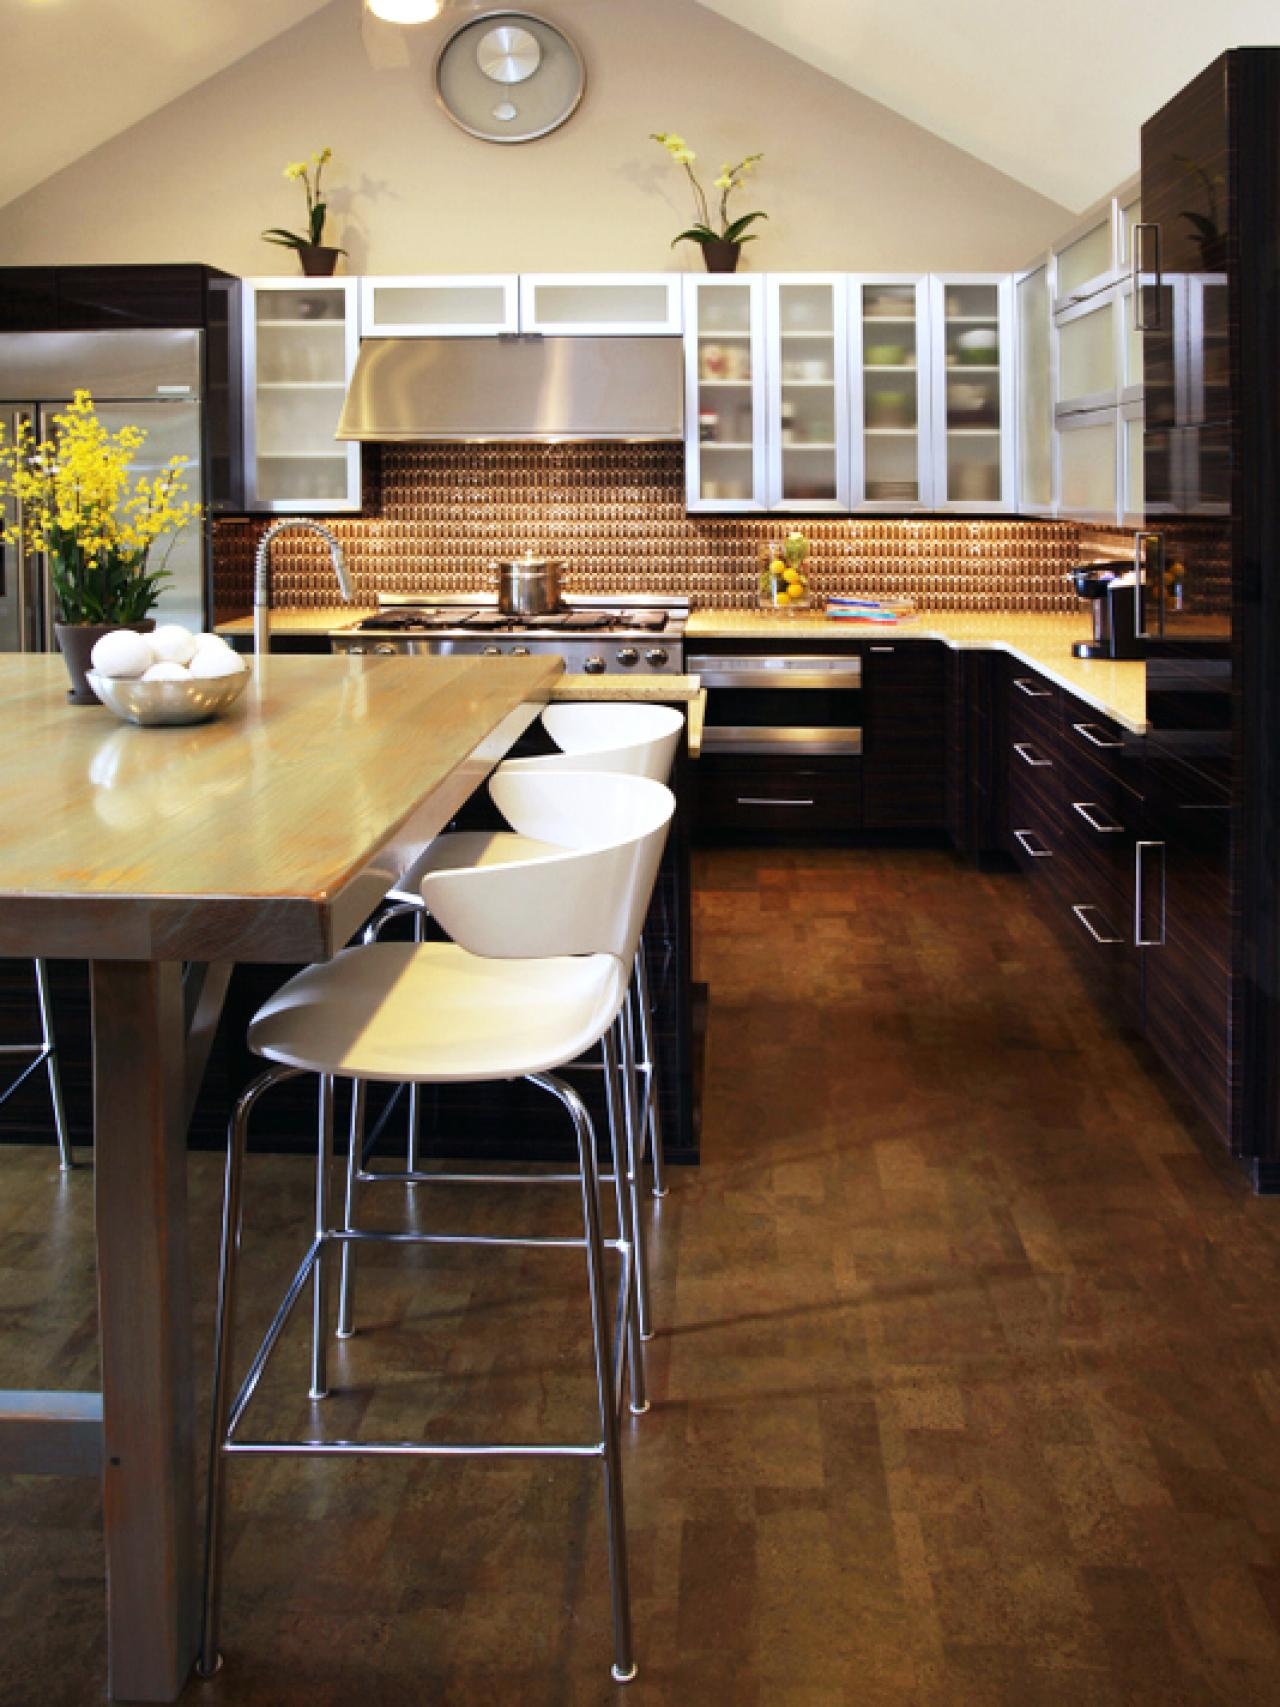 What Is A Kitchen Island With Pictures: Kitchens With Modern Kitchen Island Plans